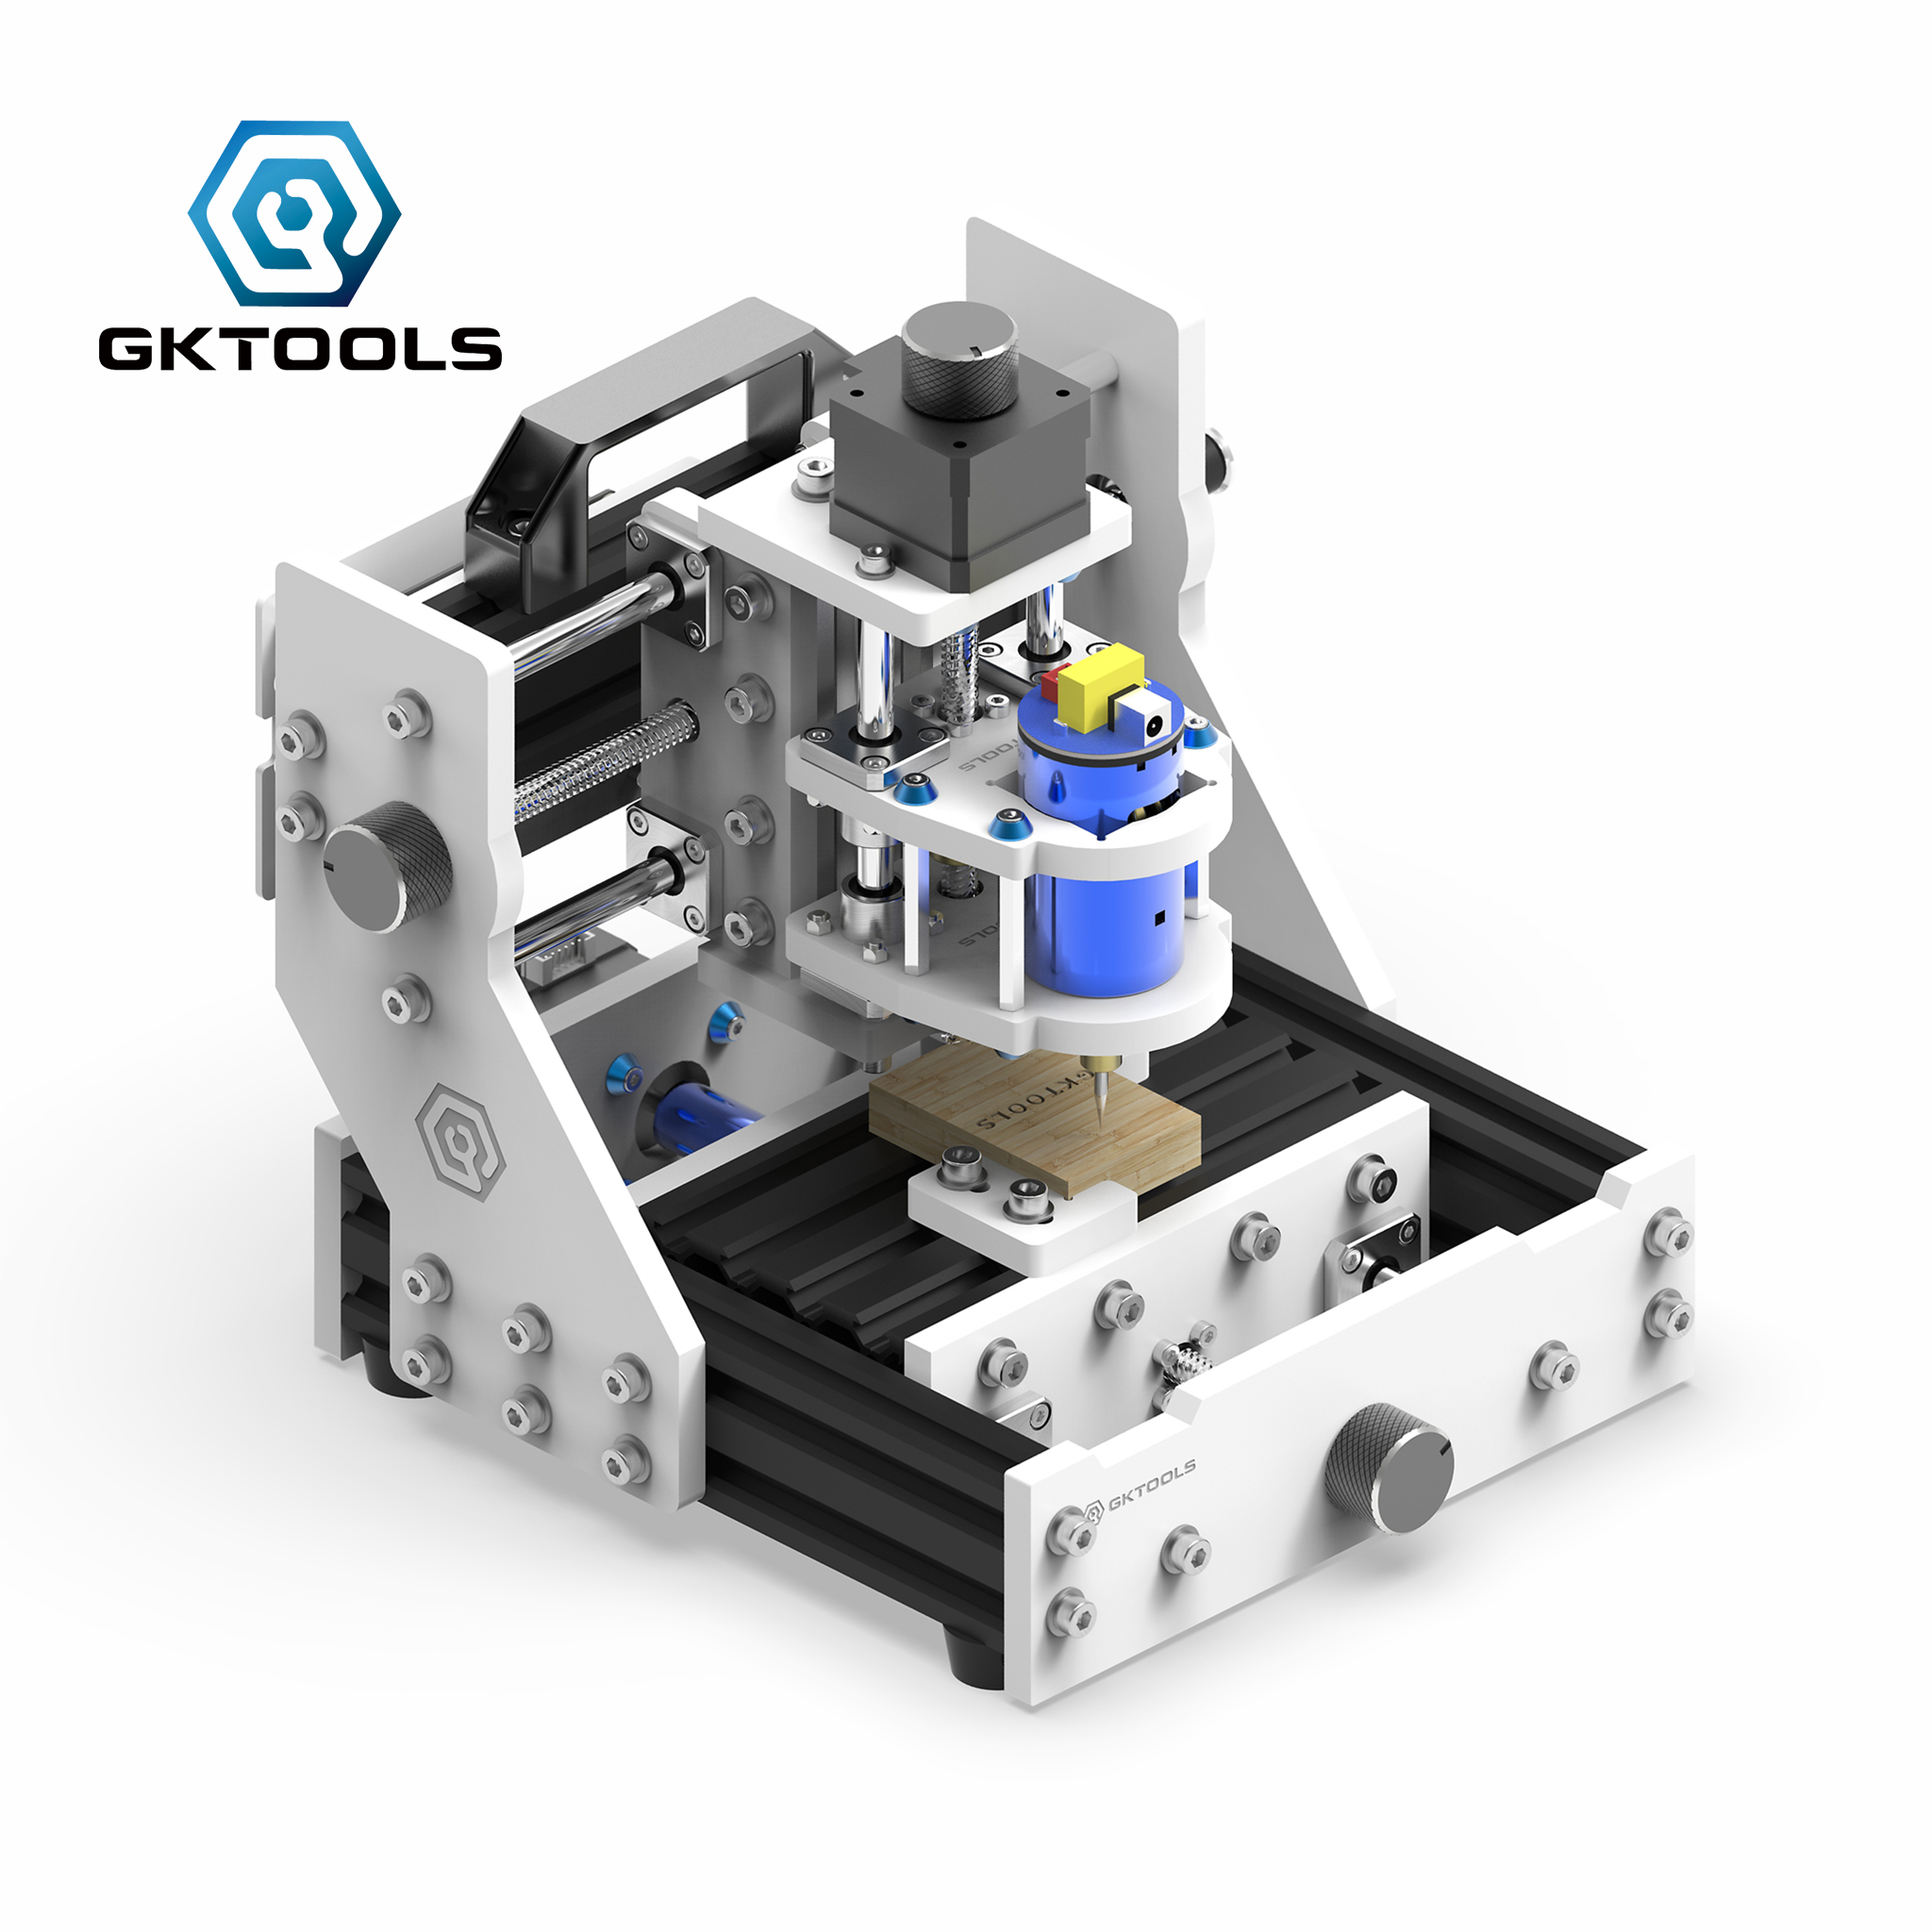 GKTOOLS CNC 1309 DIY GRBL Desktop Hobby Mini Engraving Wood Router Carving PCB Milling Mill Cutter Engraver Machine